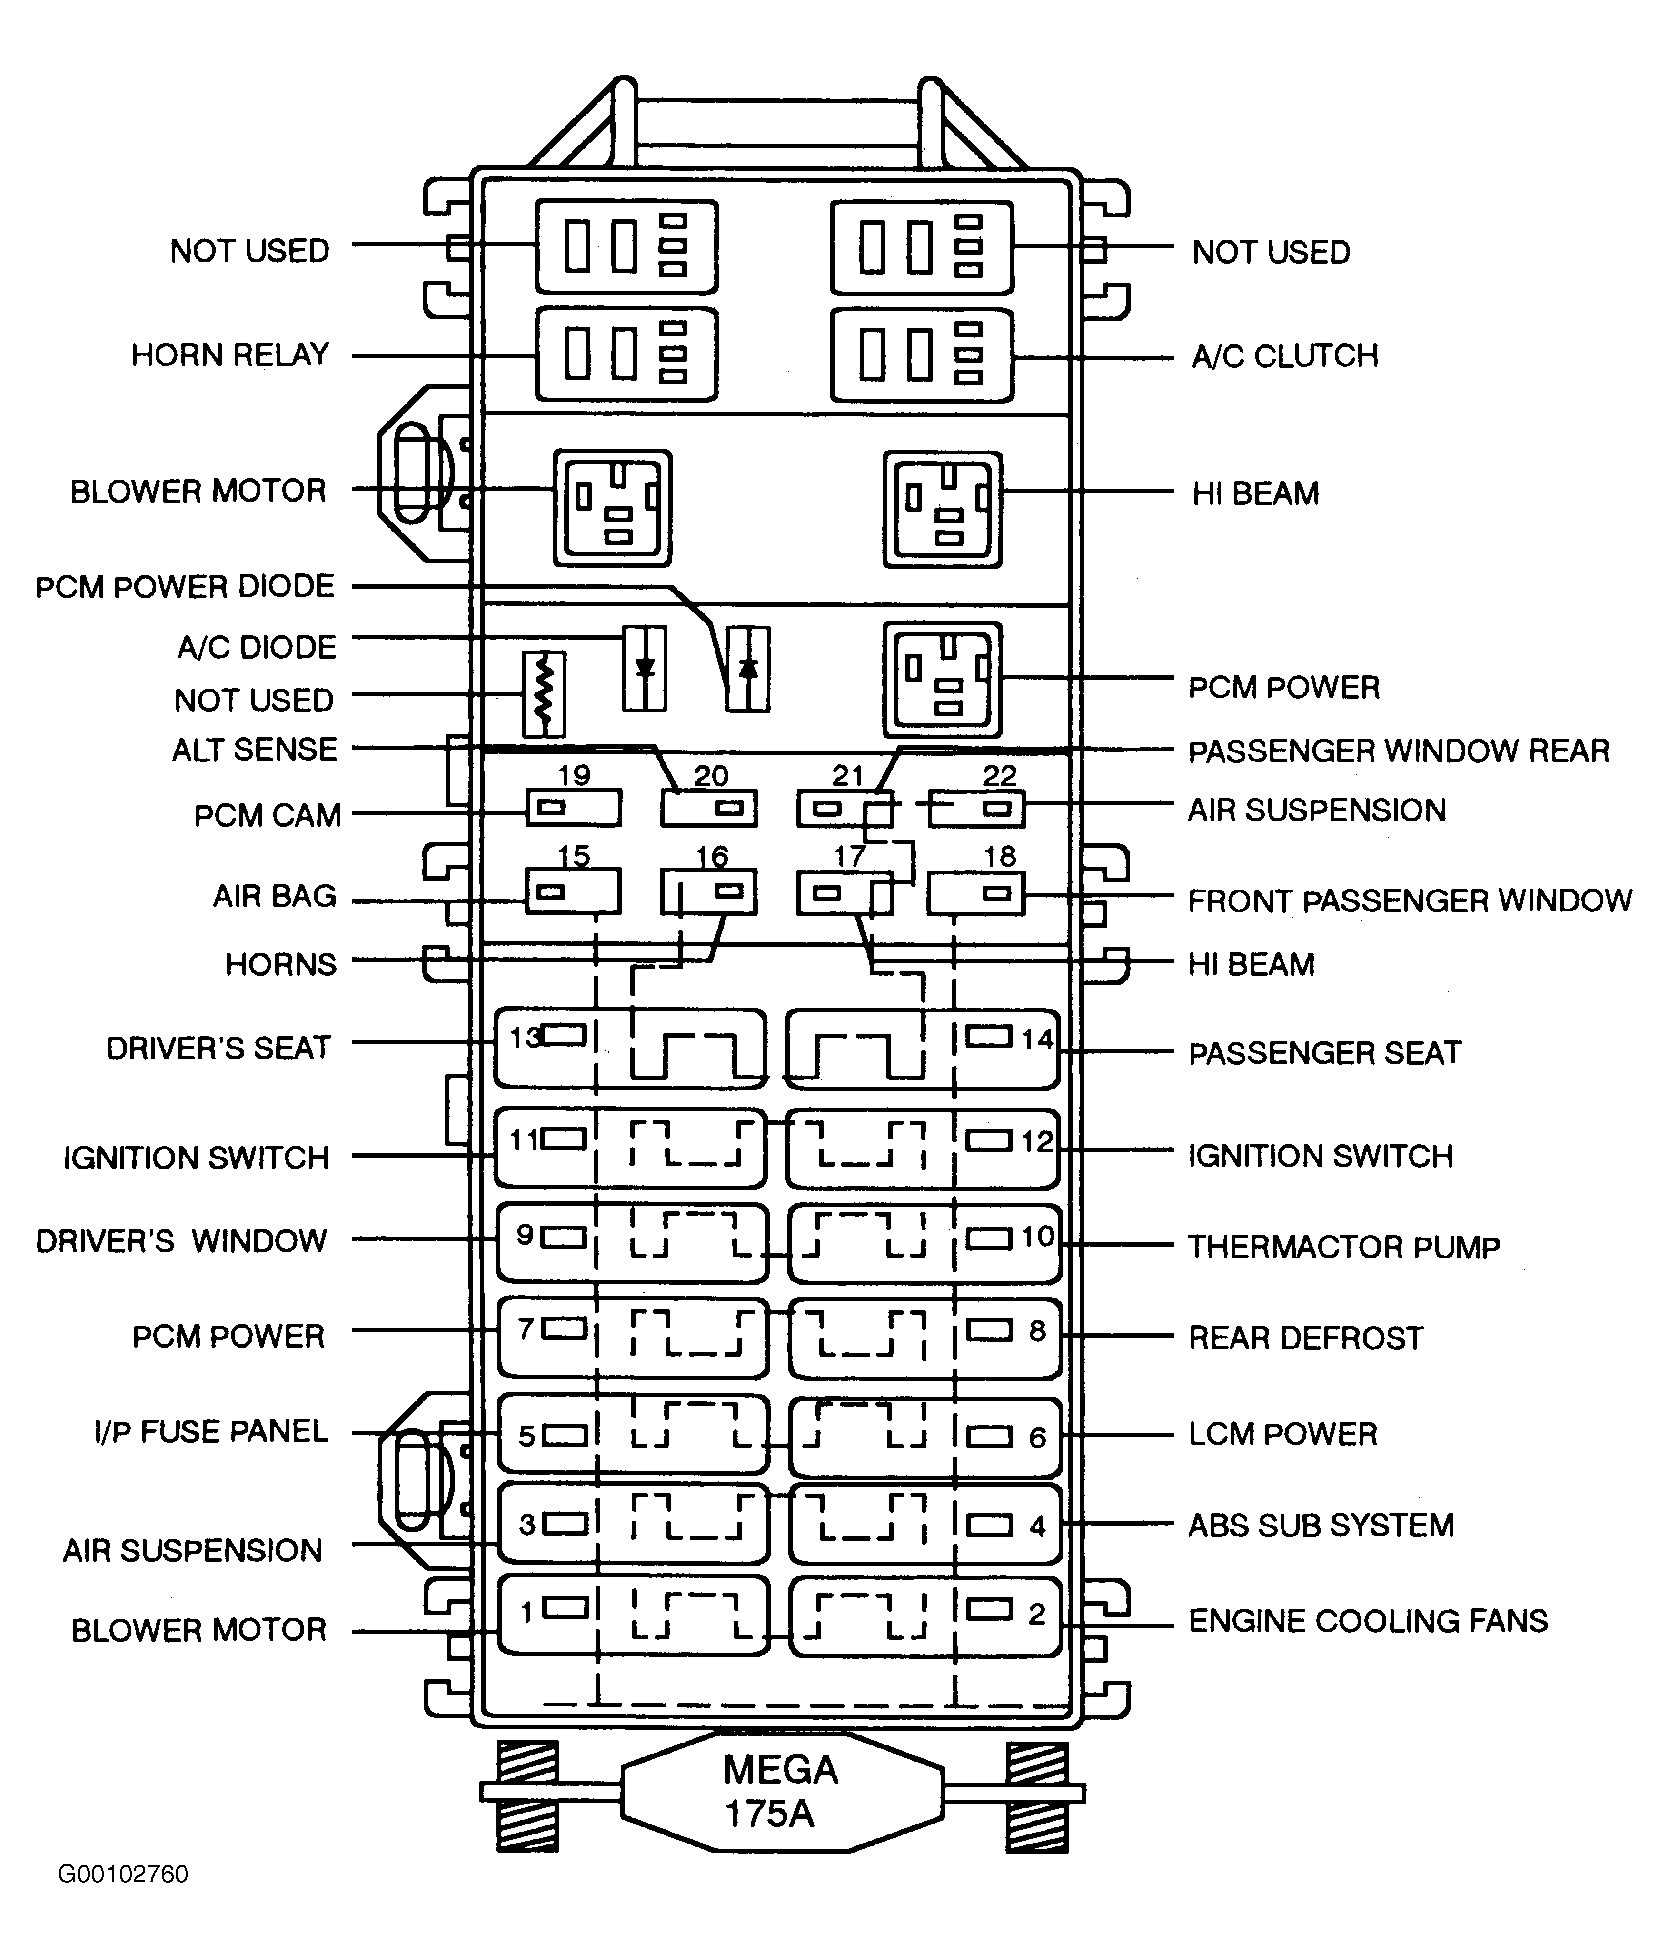 hight resolution of 1996 lincoln fuse box wiring diagram page fuse box diagram for 1997 lincoln town car